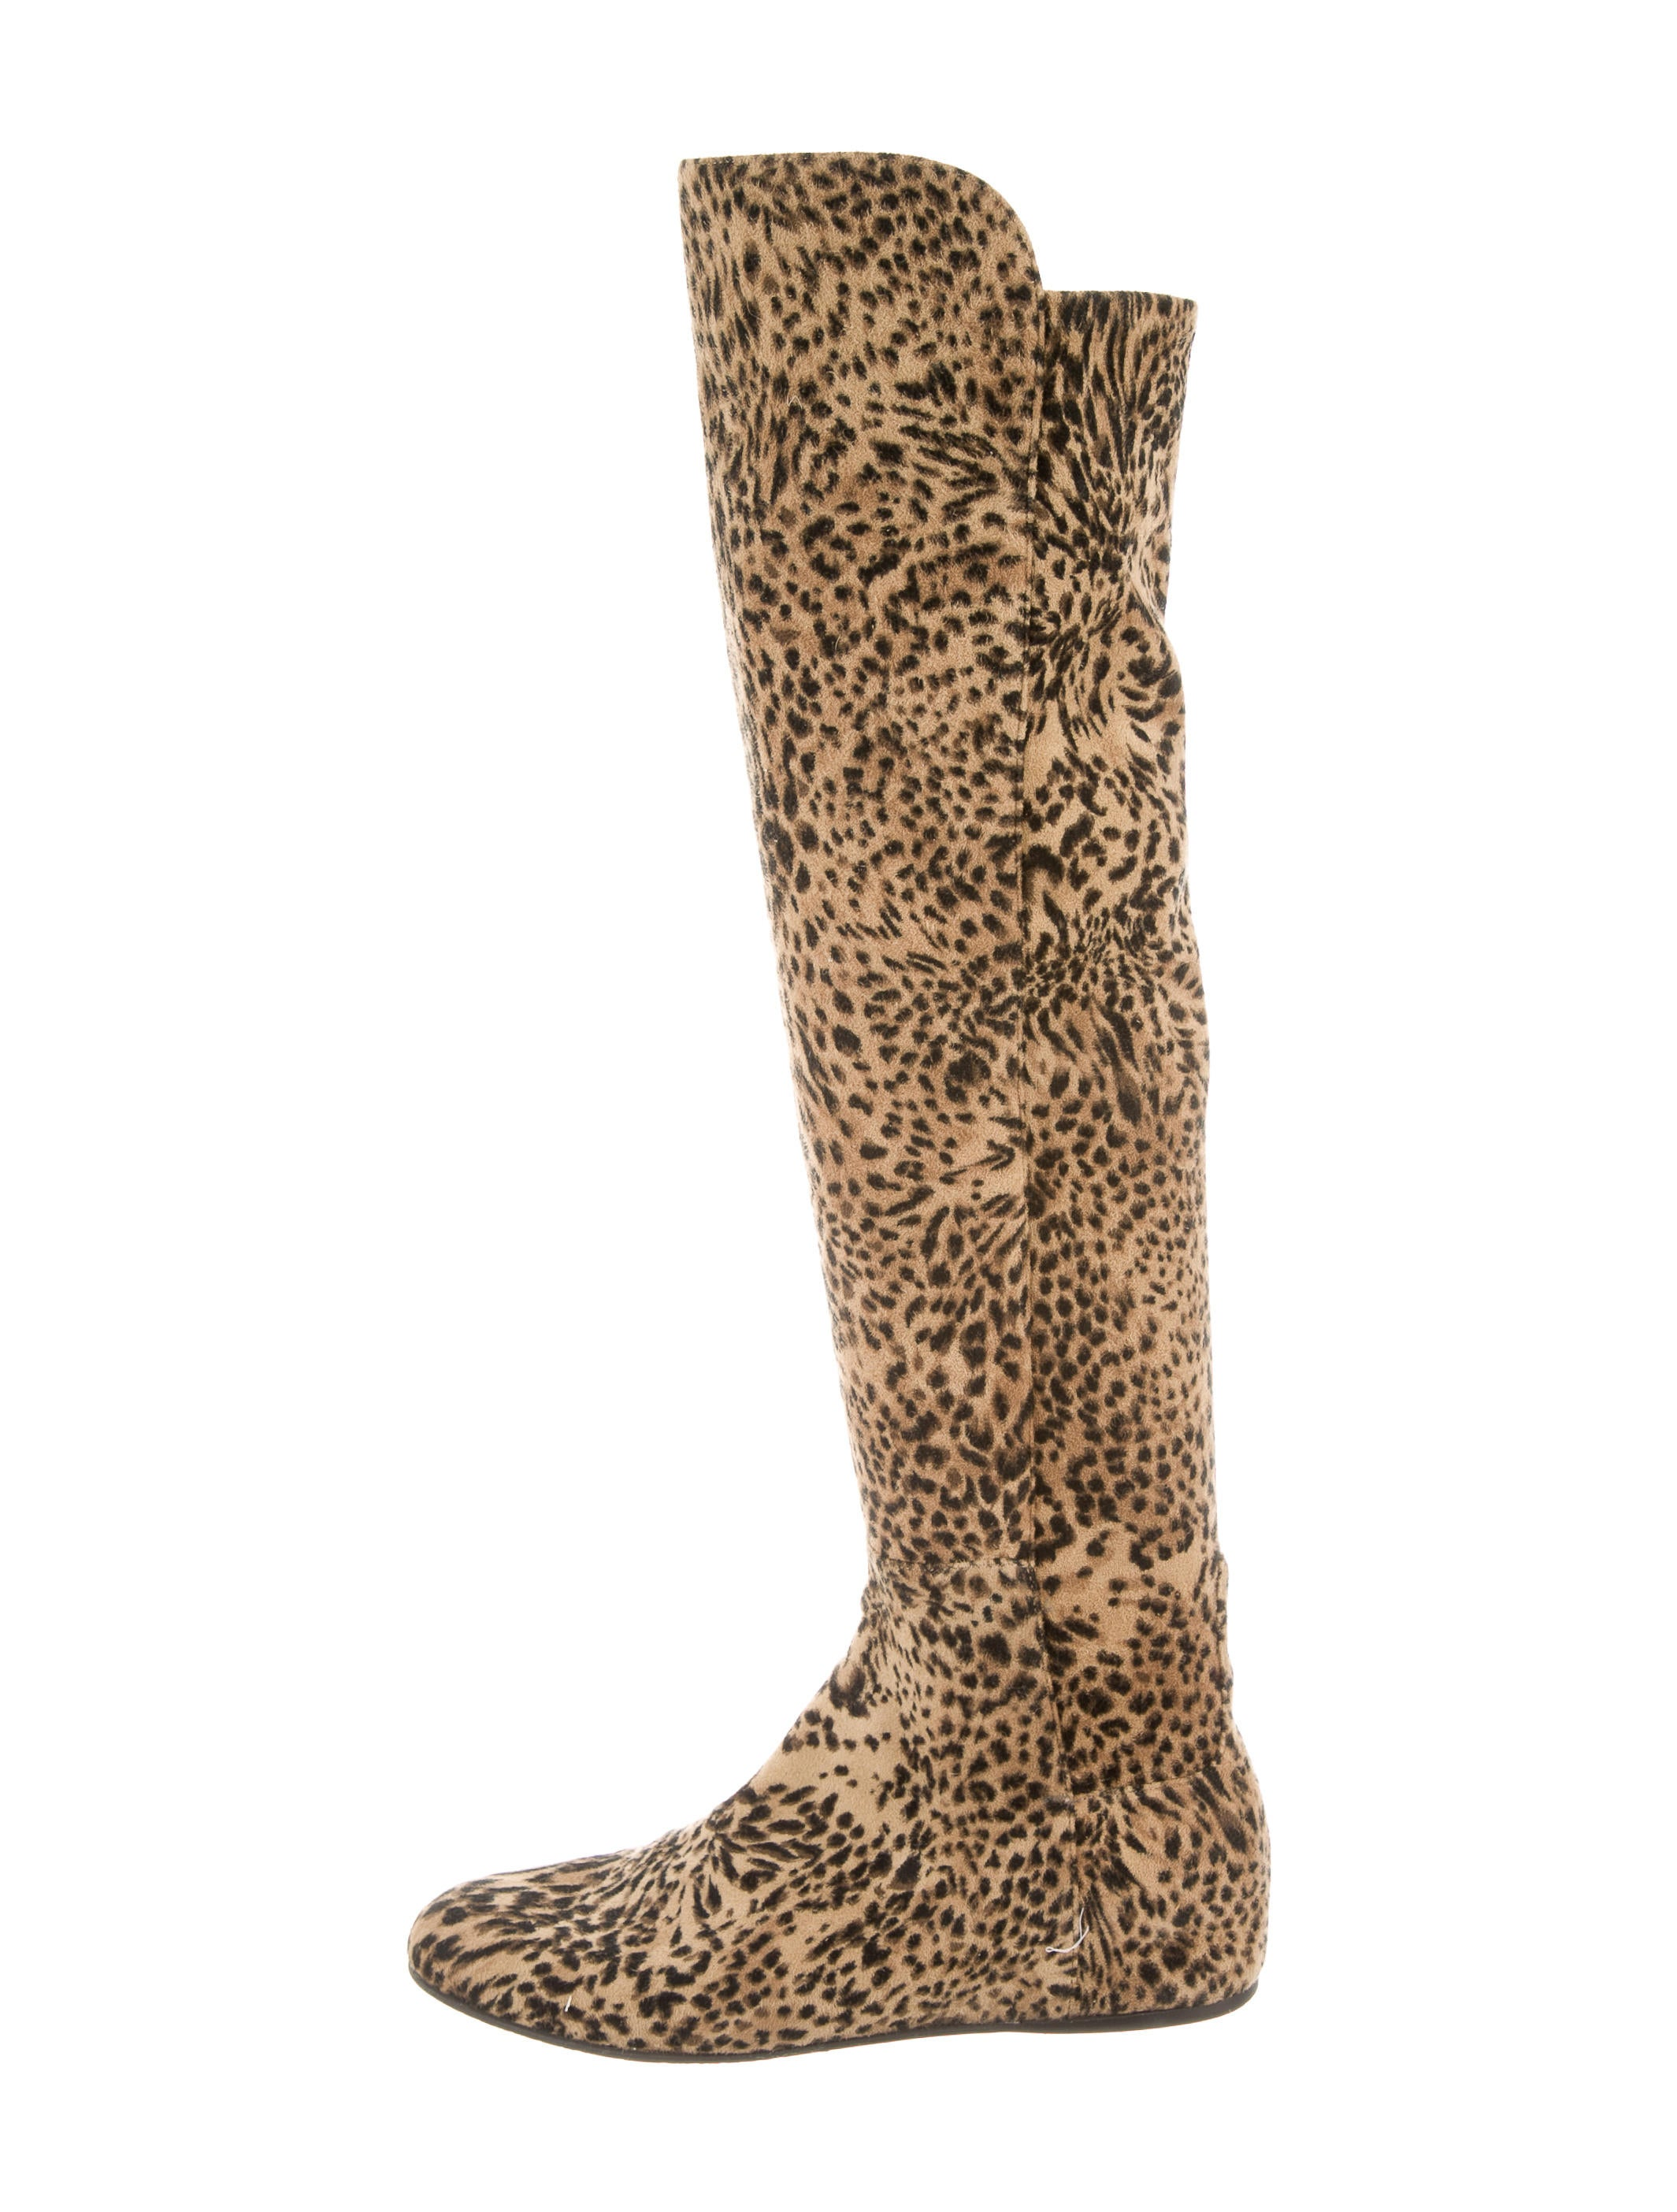 Shop for leopard mules shoes online at Target. Free shipping on purchases over $35 and save 5% every day with your Target REDcard.